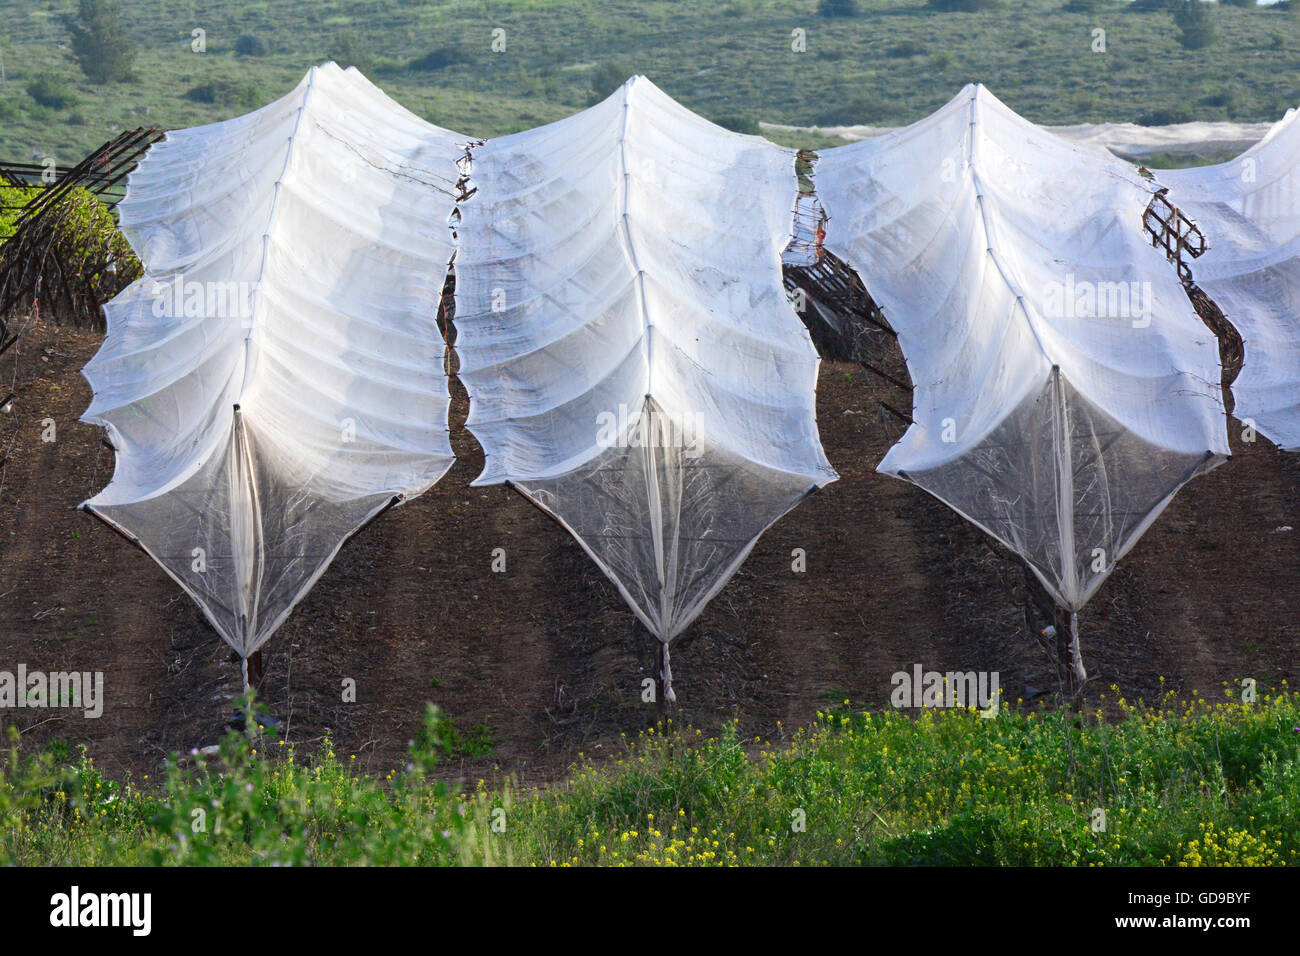 Vineyard net protection, Israel - Stock Image